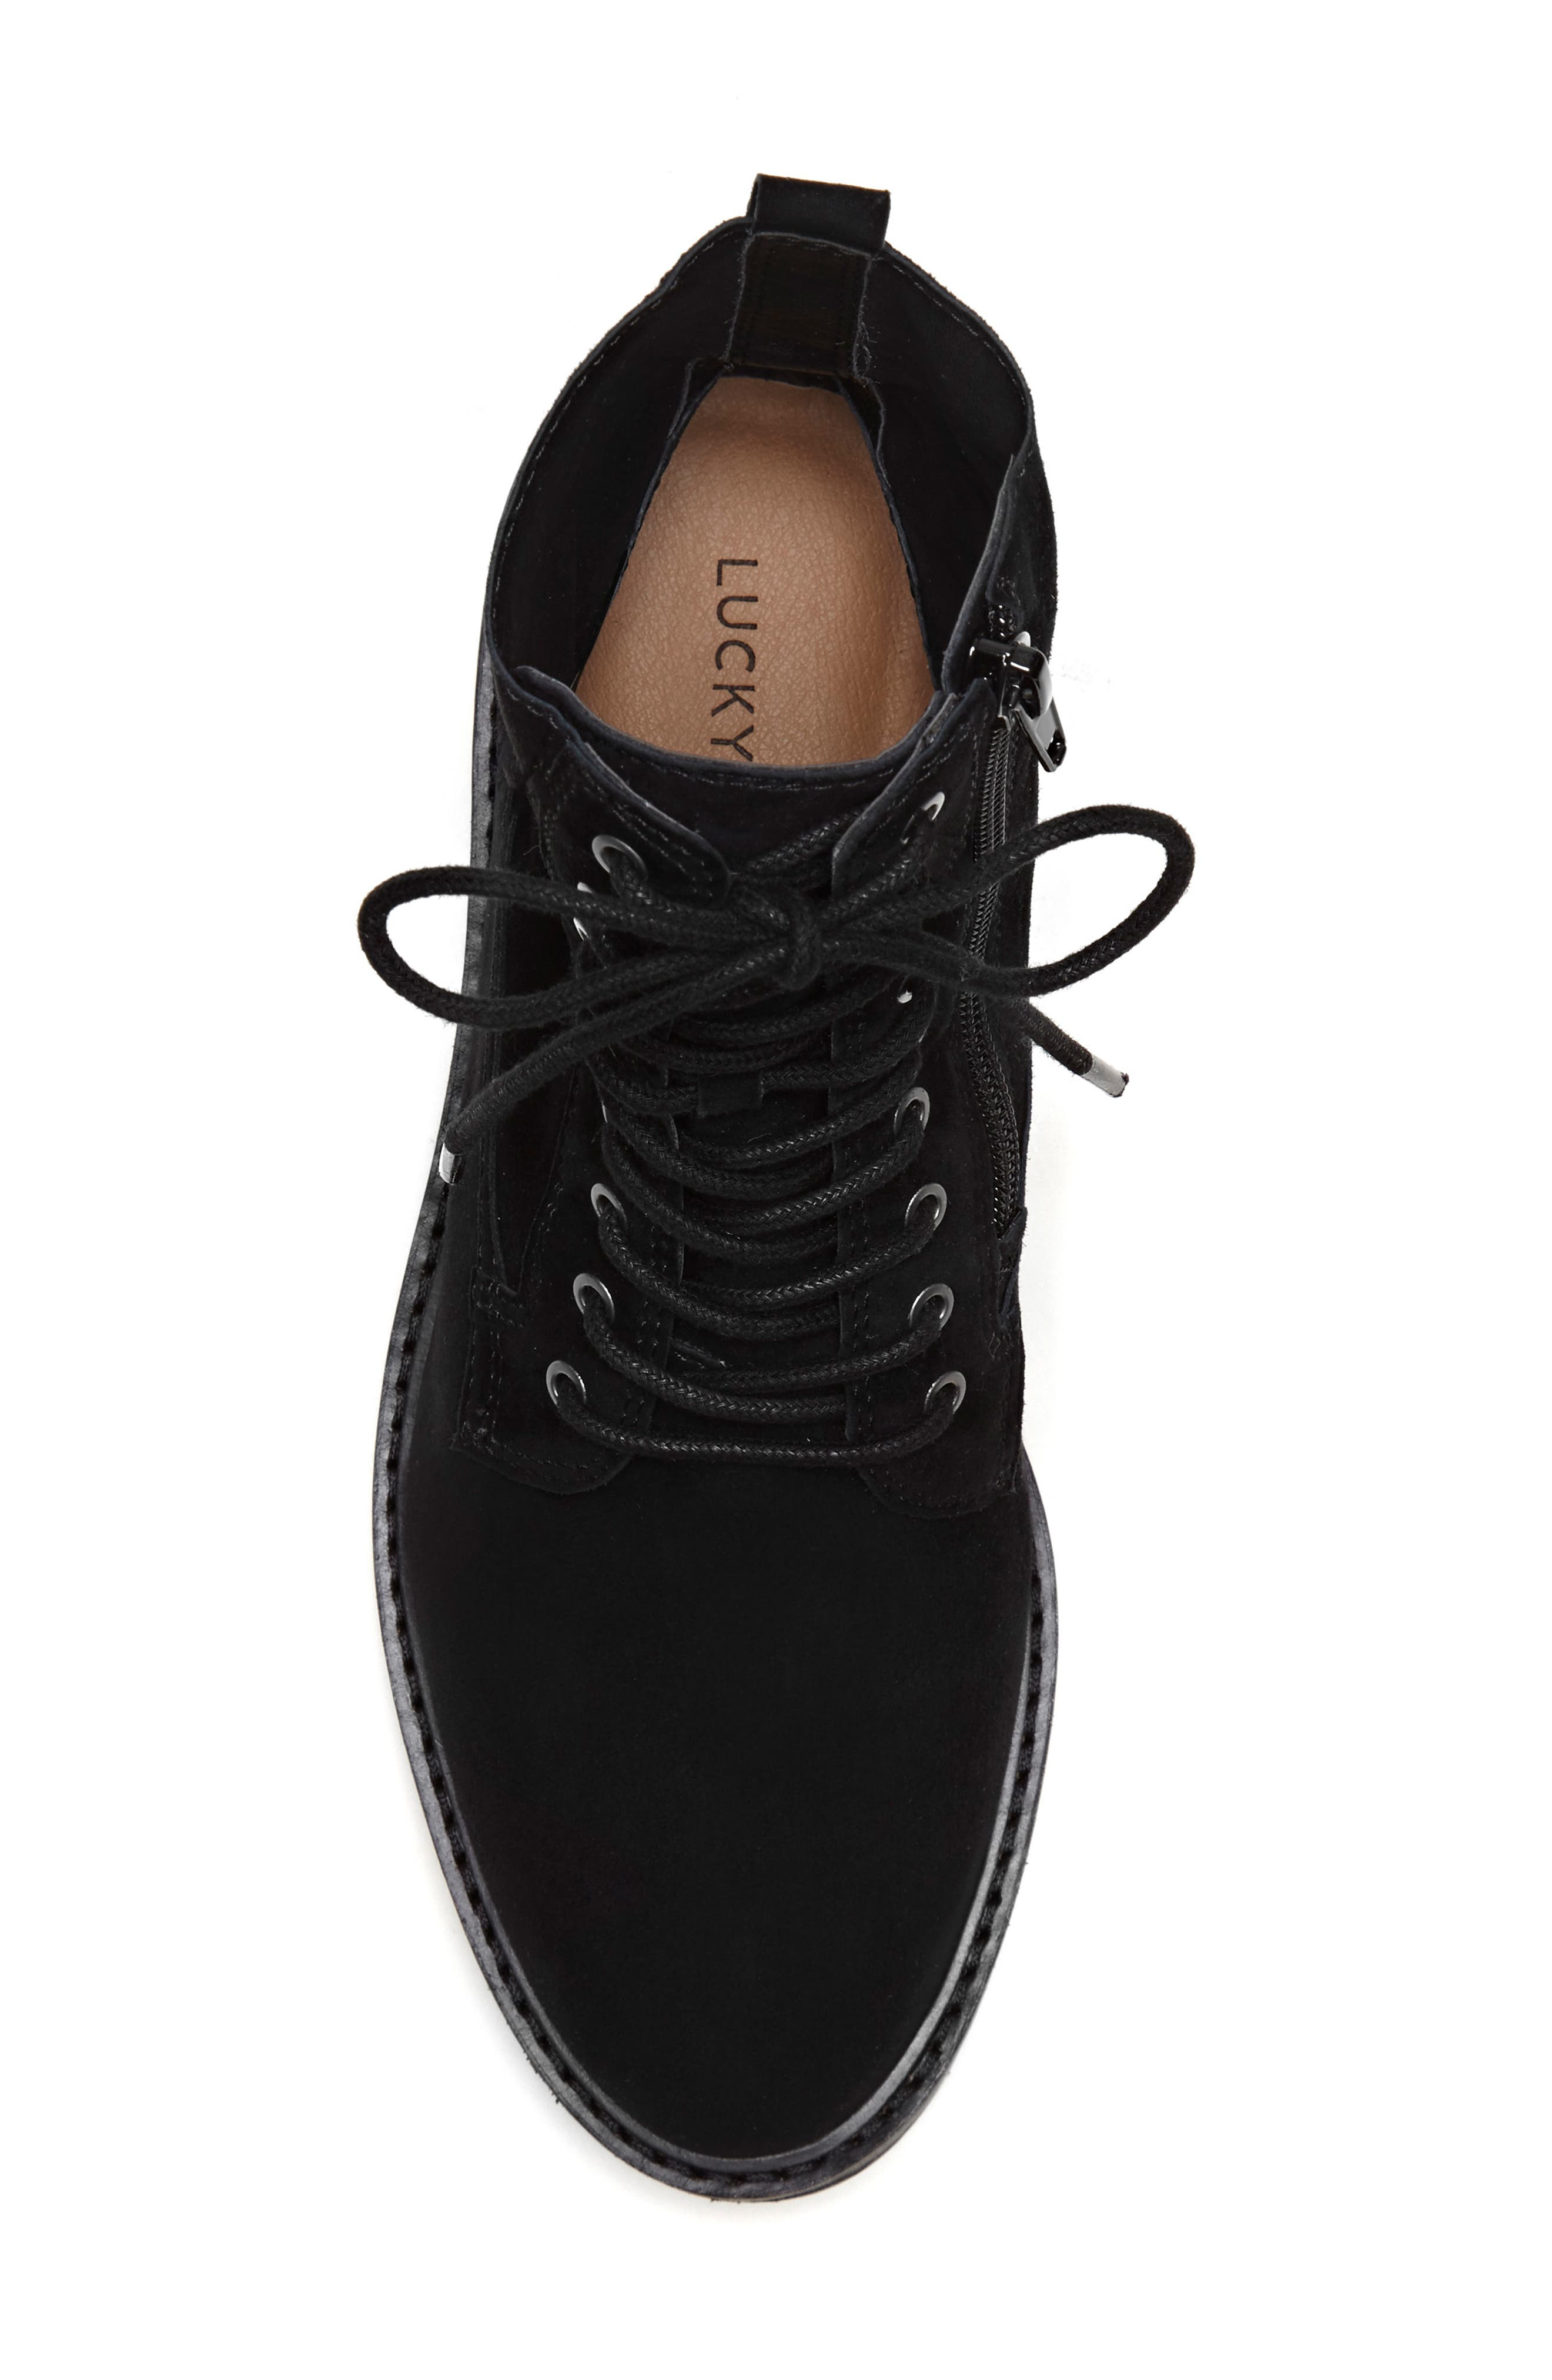 LUCKY BRAND, Idara Lace-Up Bootie, Alternate thumbnail 4, color, 001